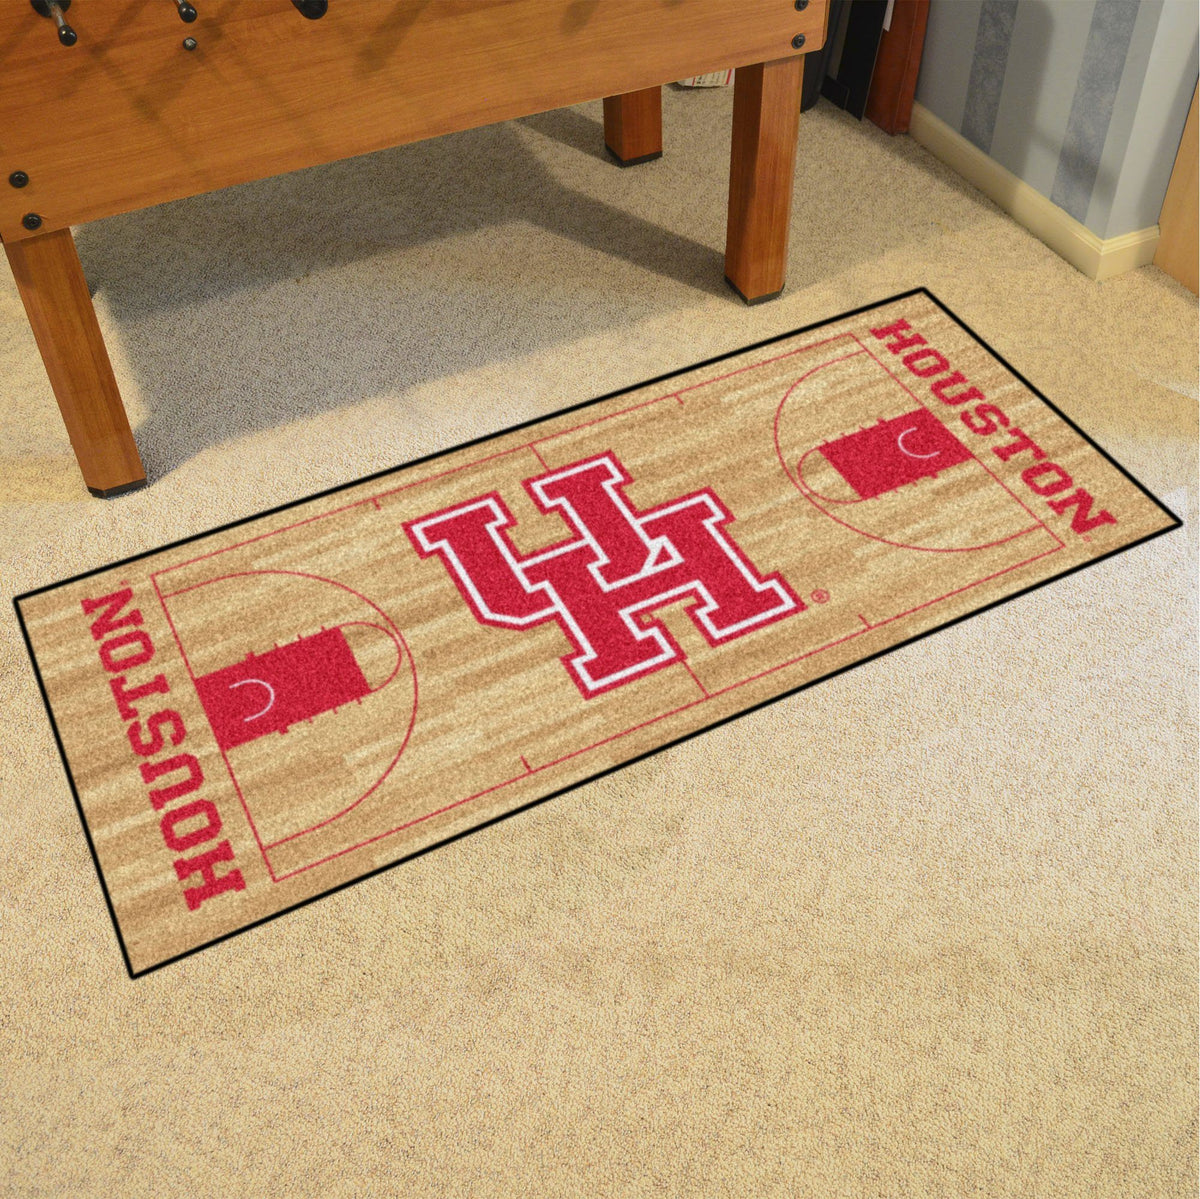 Collegiate - NCAA Basketball Runner Collegiate Mats, Rectangular Mats, NCAA Basketball Runner, Collegiate, Home Fan Mats Houston